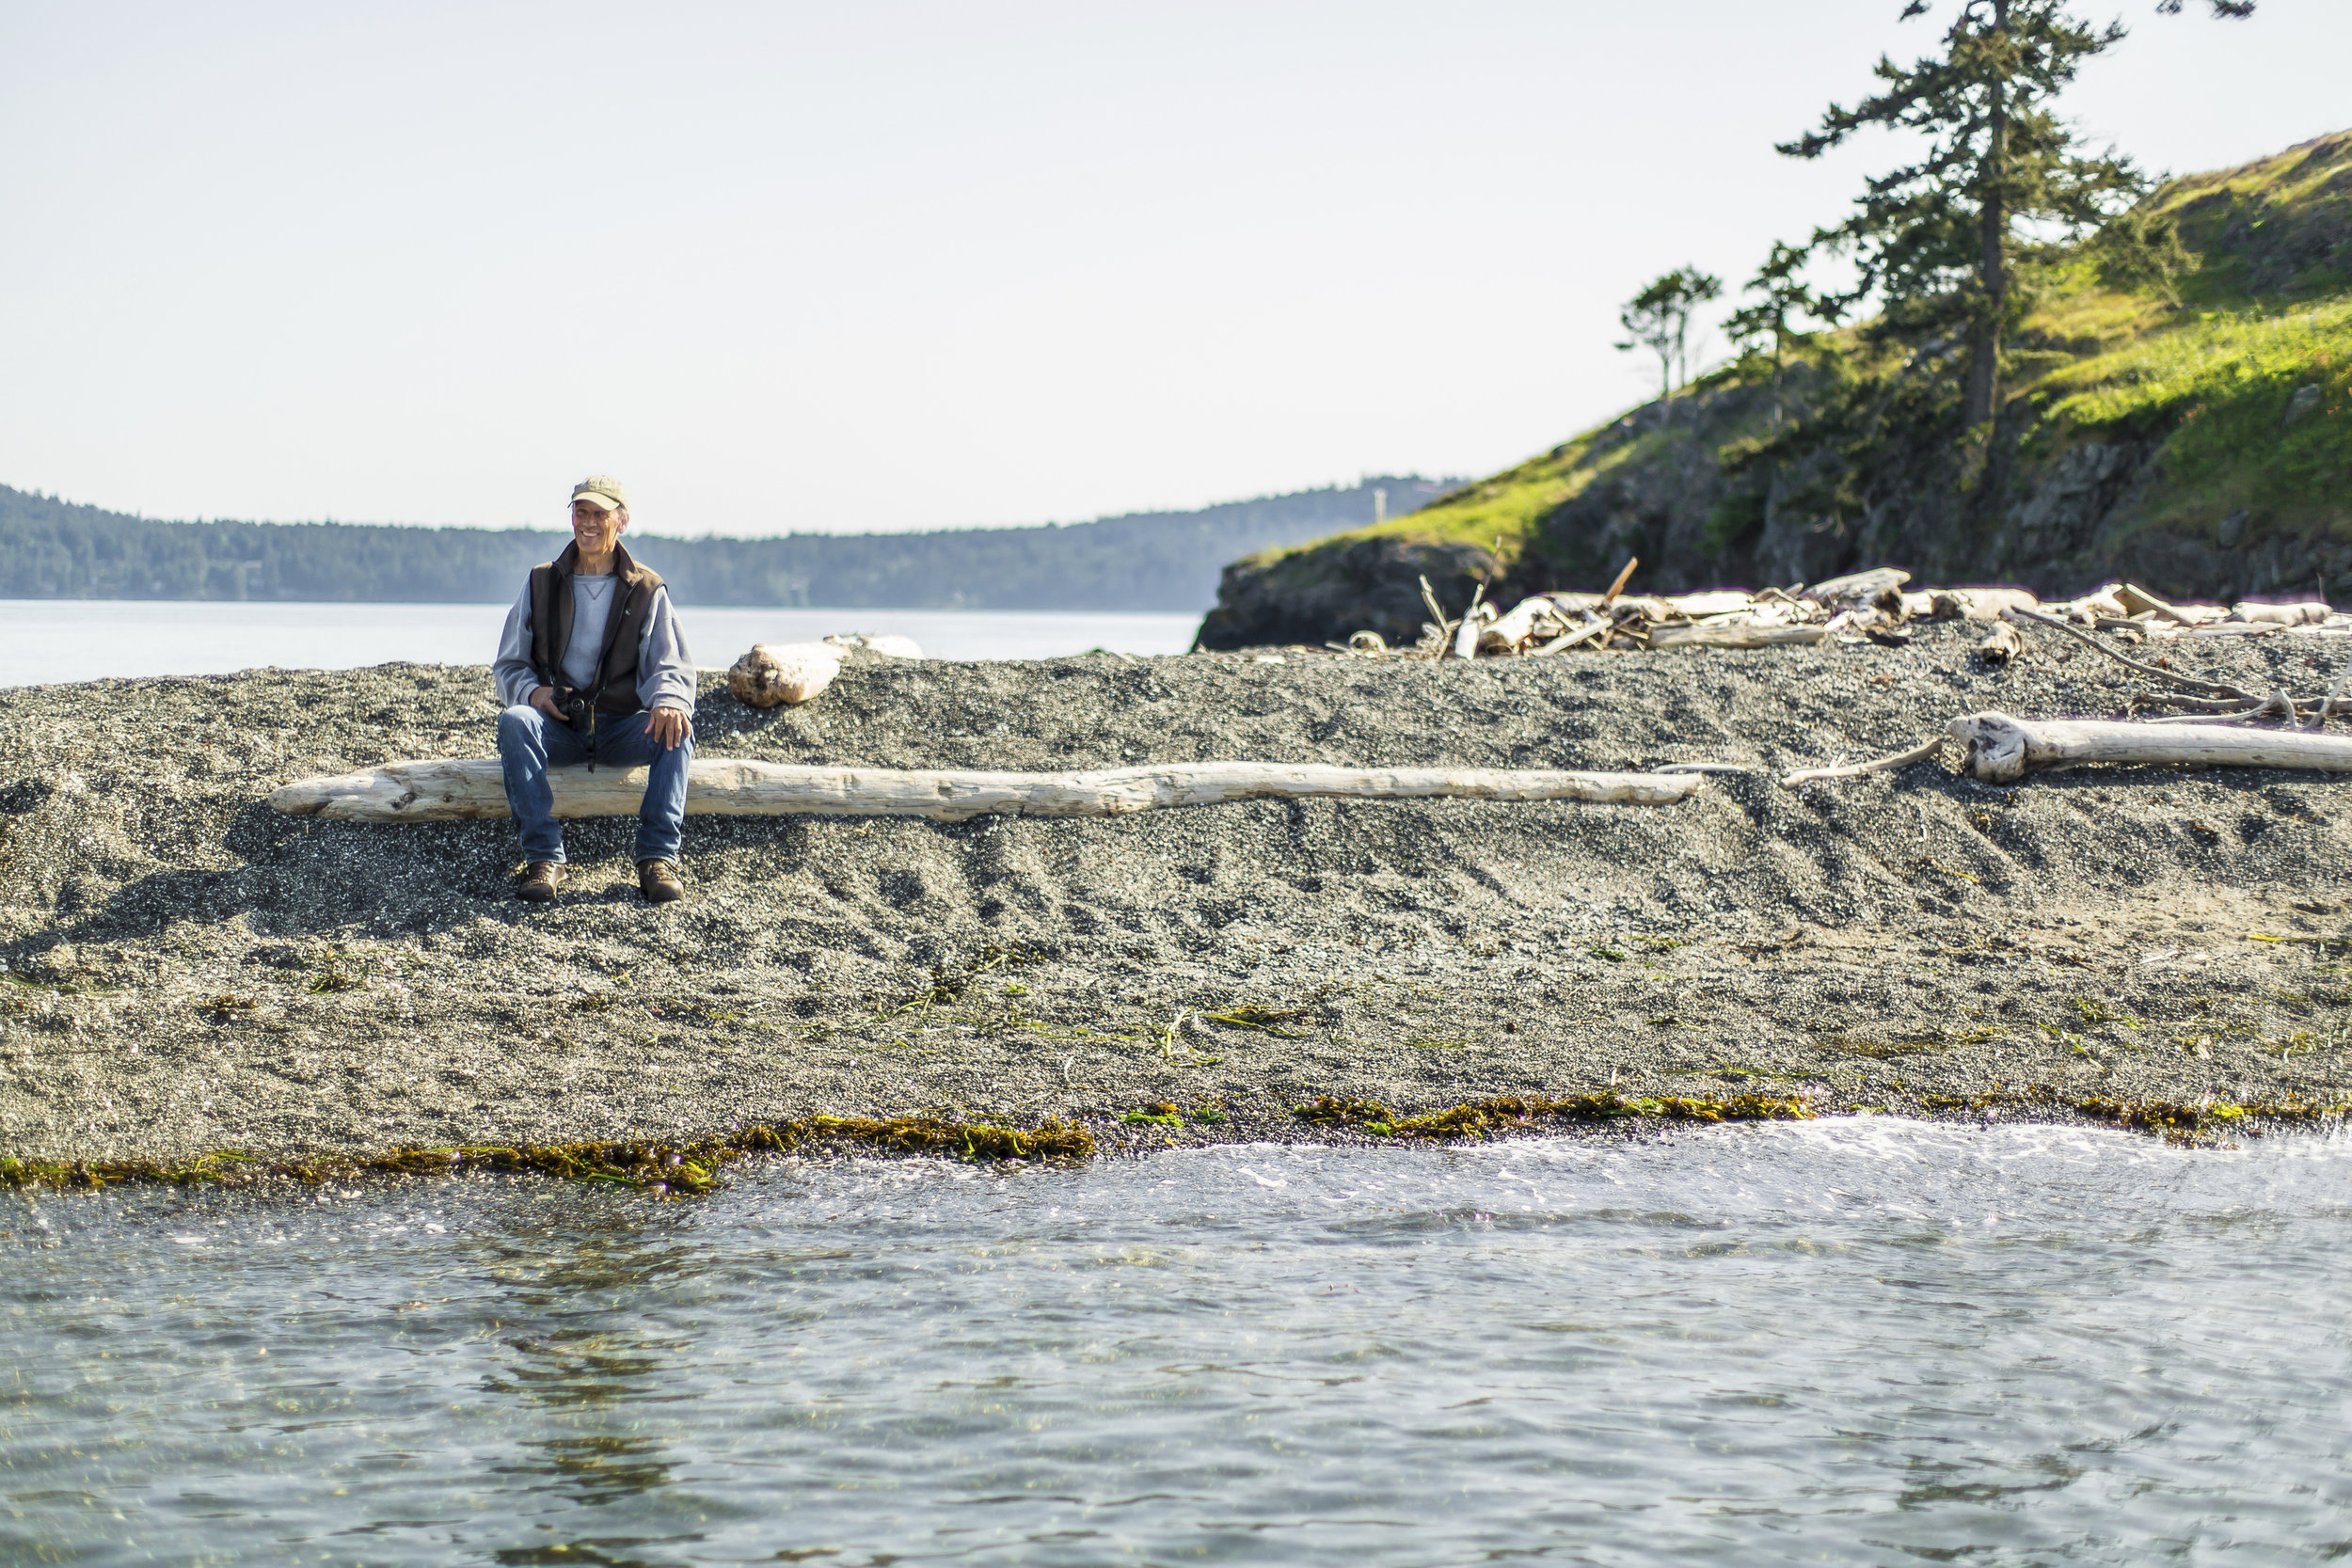 Phil Green is the steward of The Nature Conservancy's Yellow Island preserve. Photo by Cameron Karsten